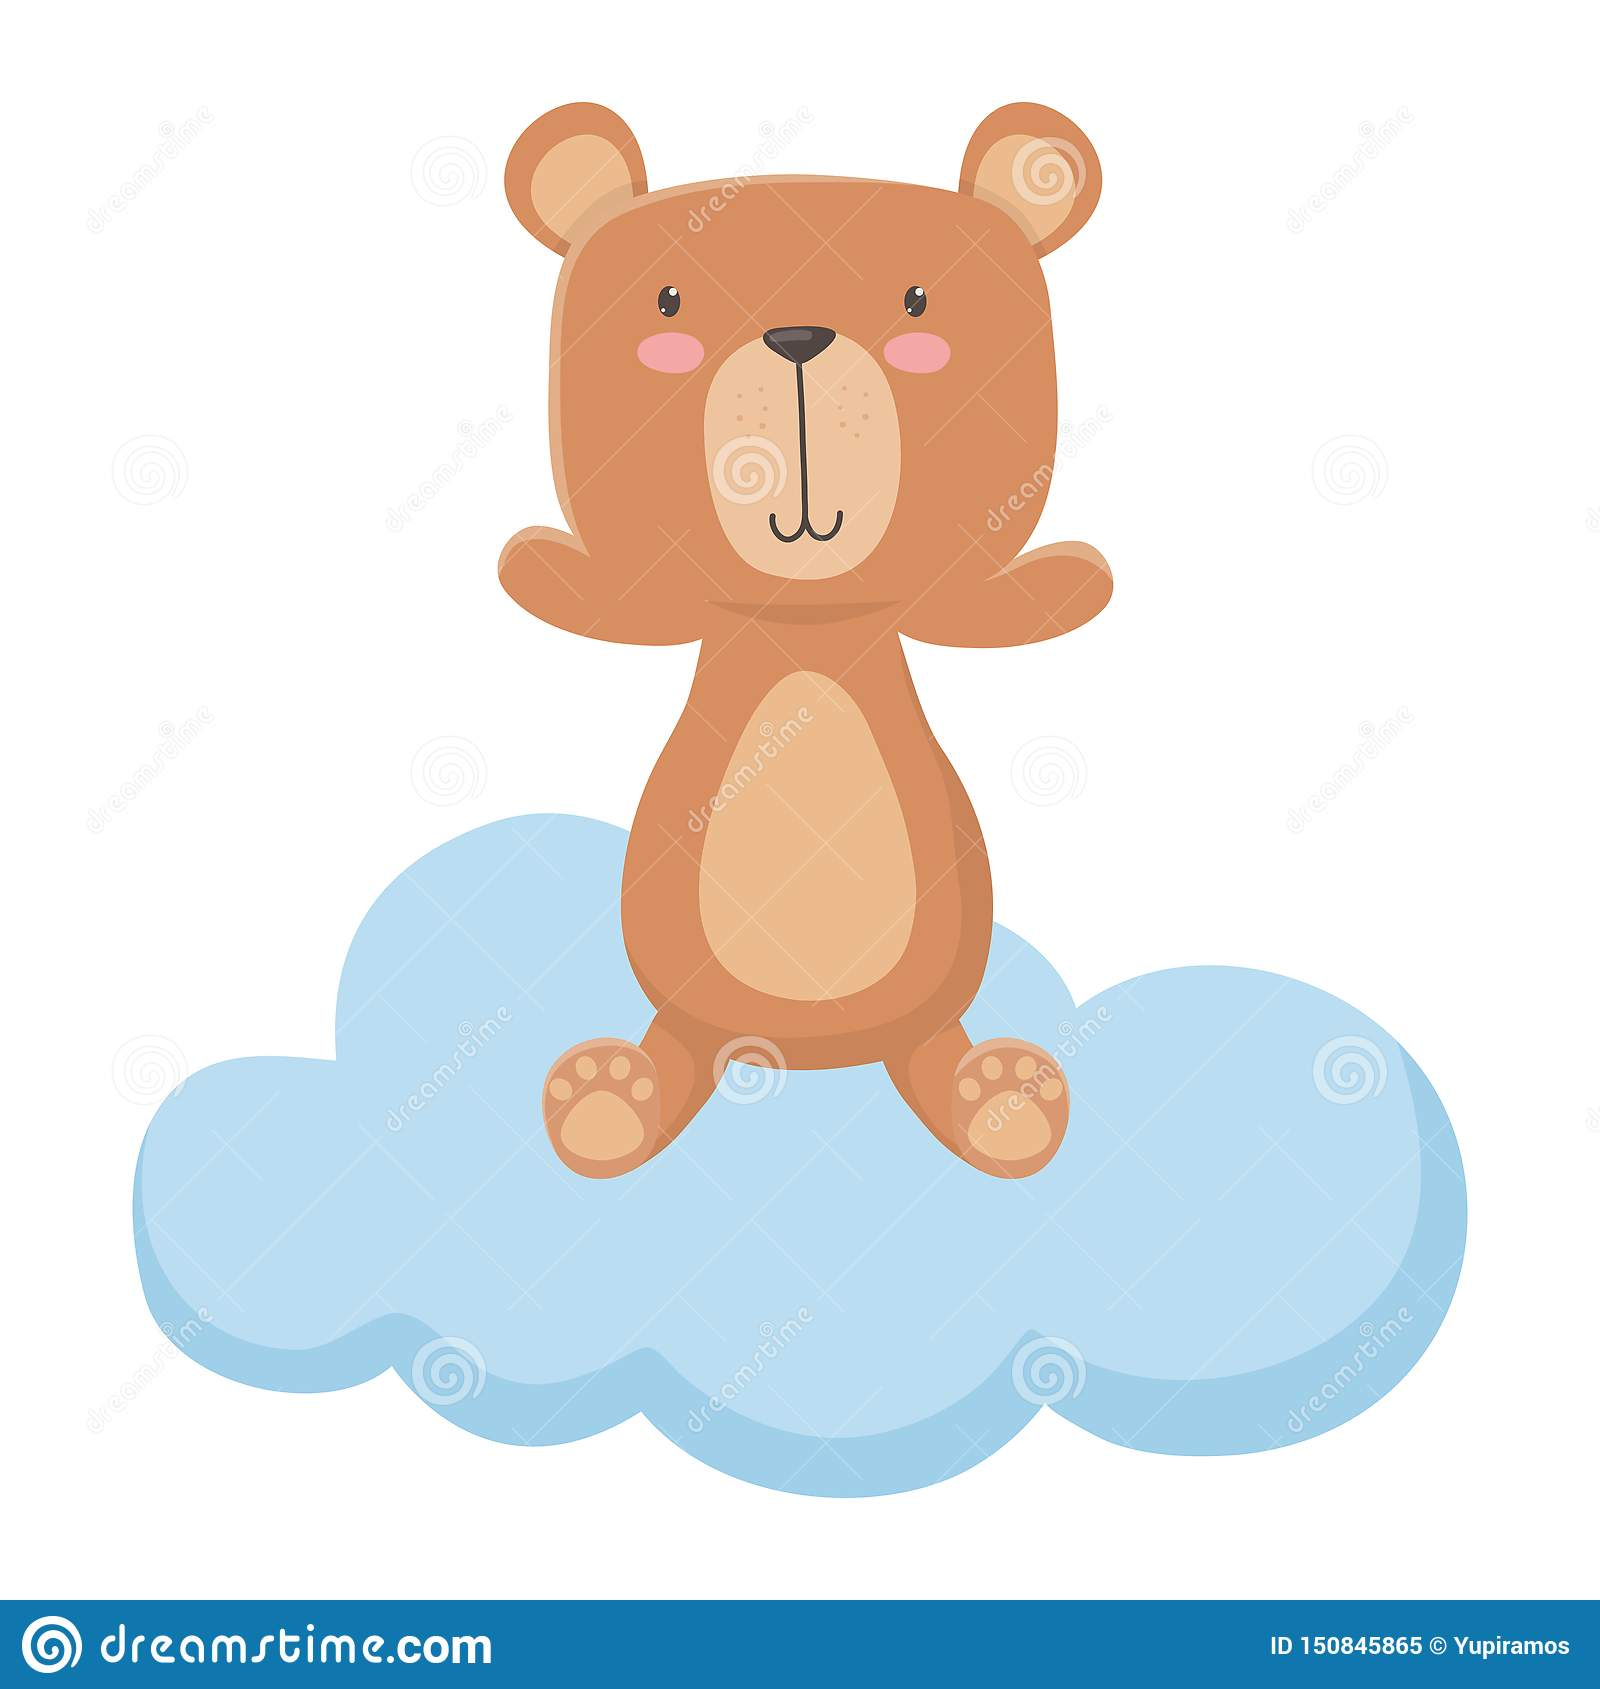 Teddy bear cartoon design vector illustration